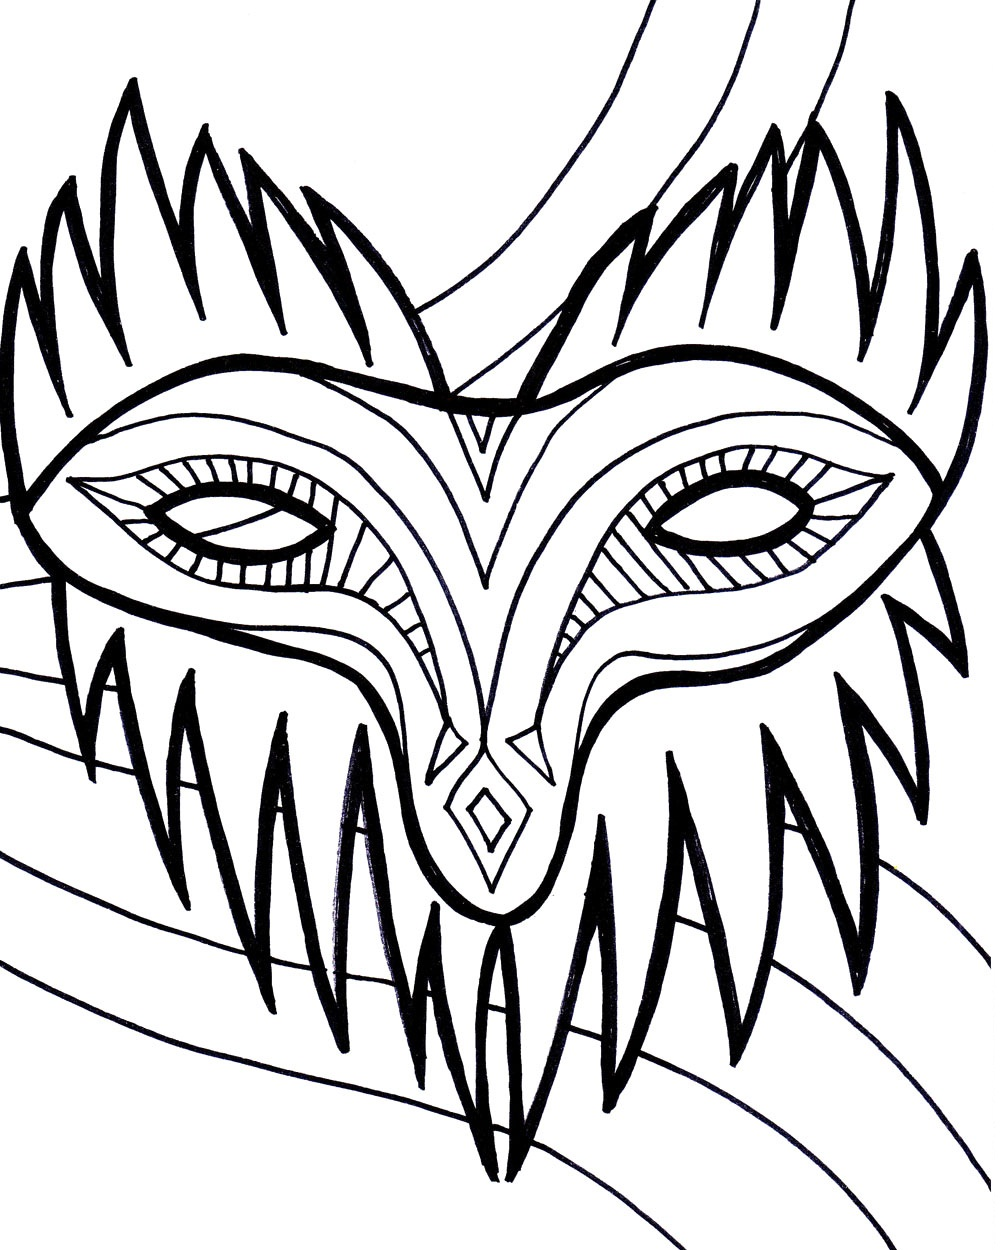 Printable Mardi Gras Mask Coloring Page